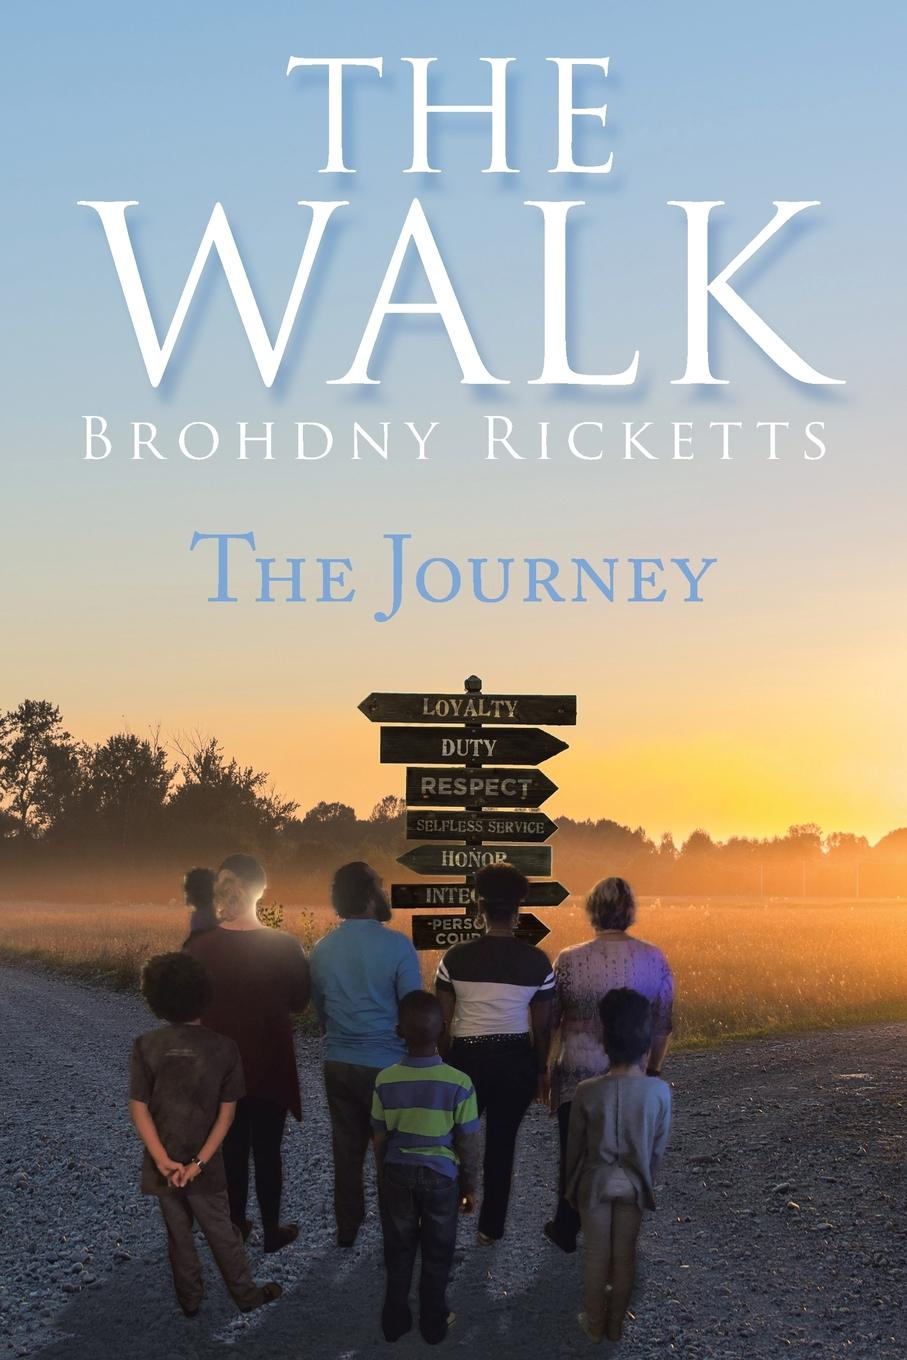 Brohdny Ricketts The Walk. The Journey same issue different presentations